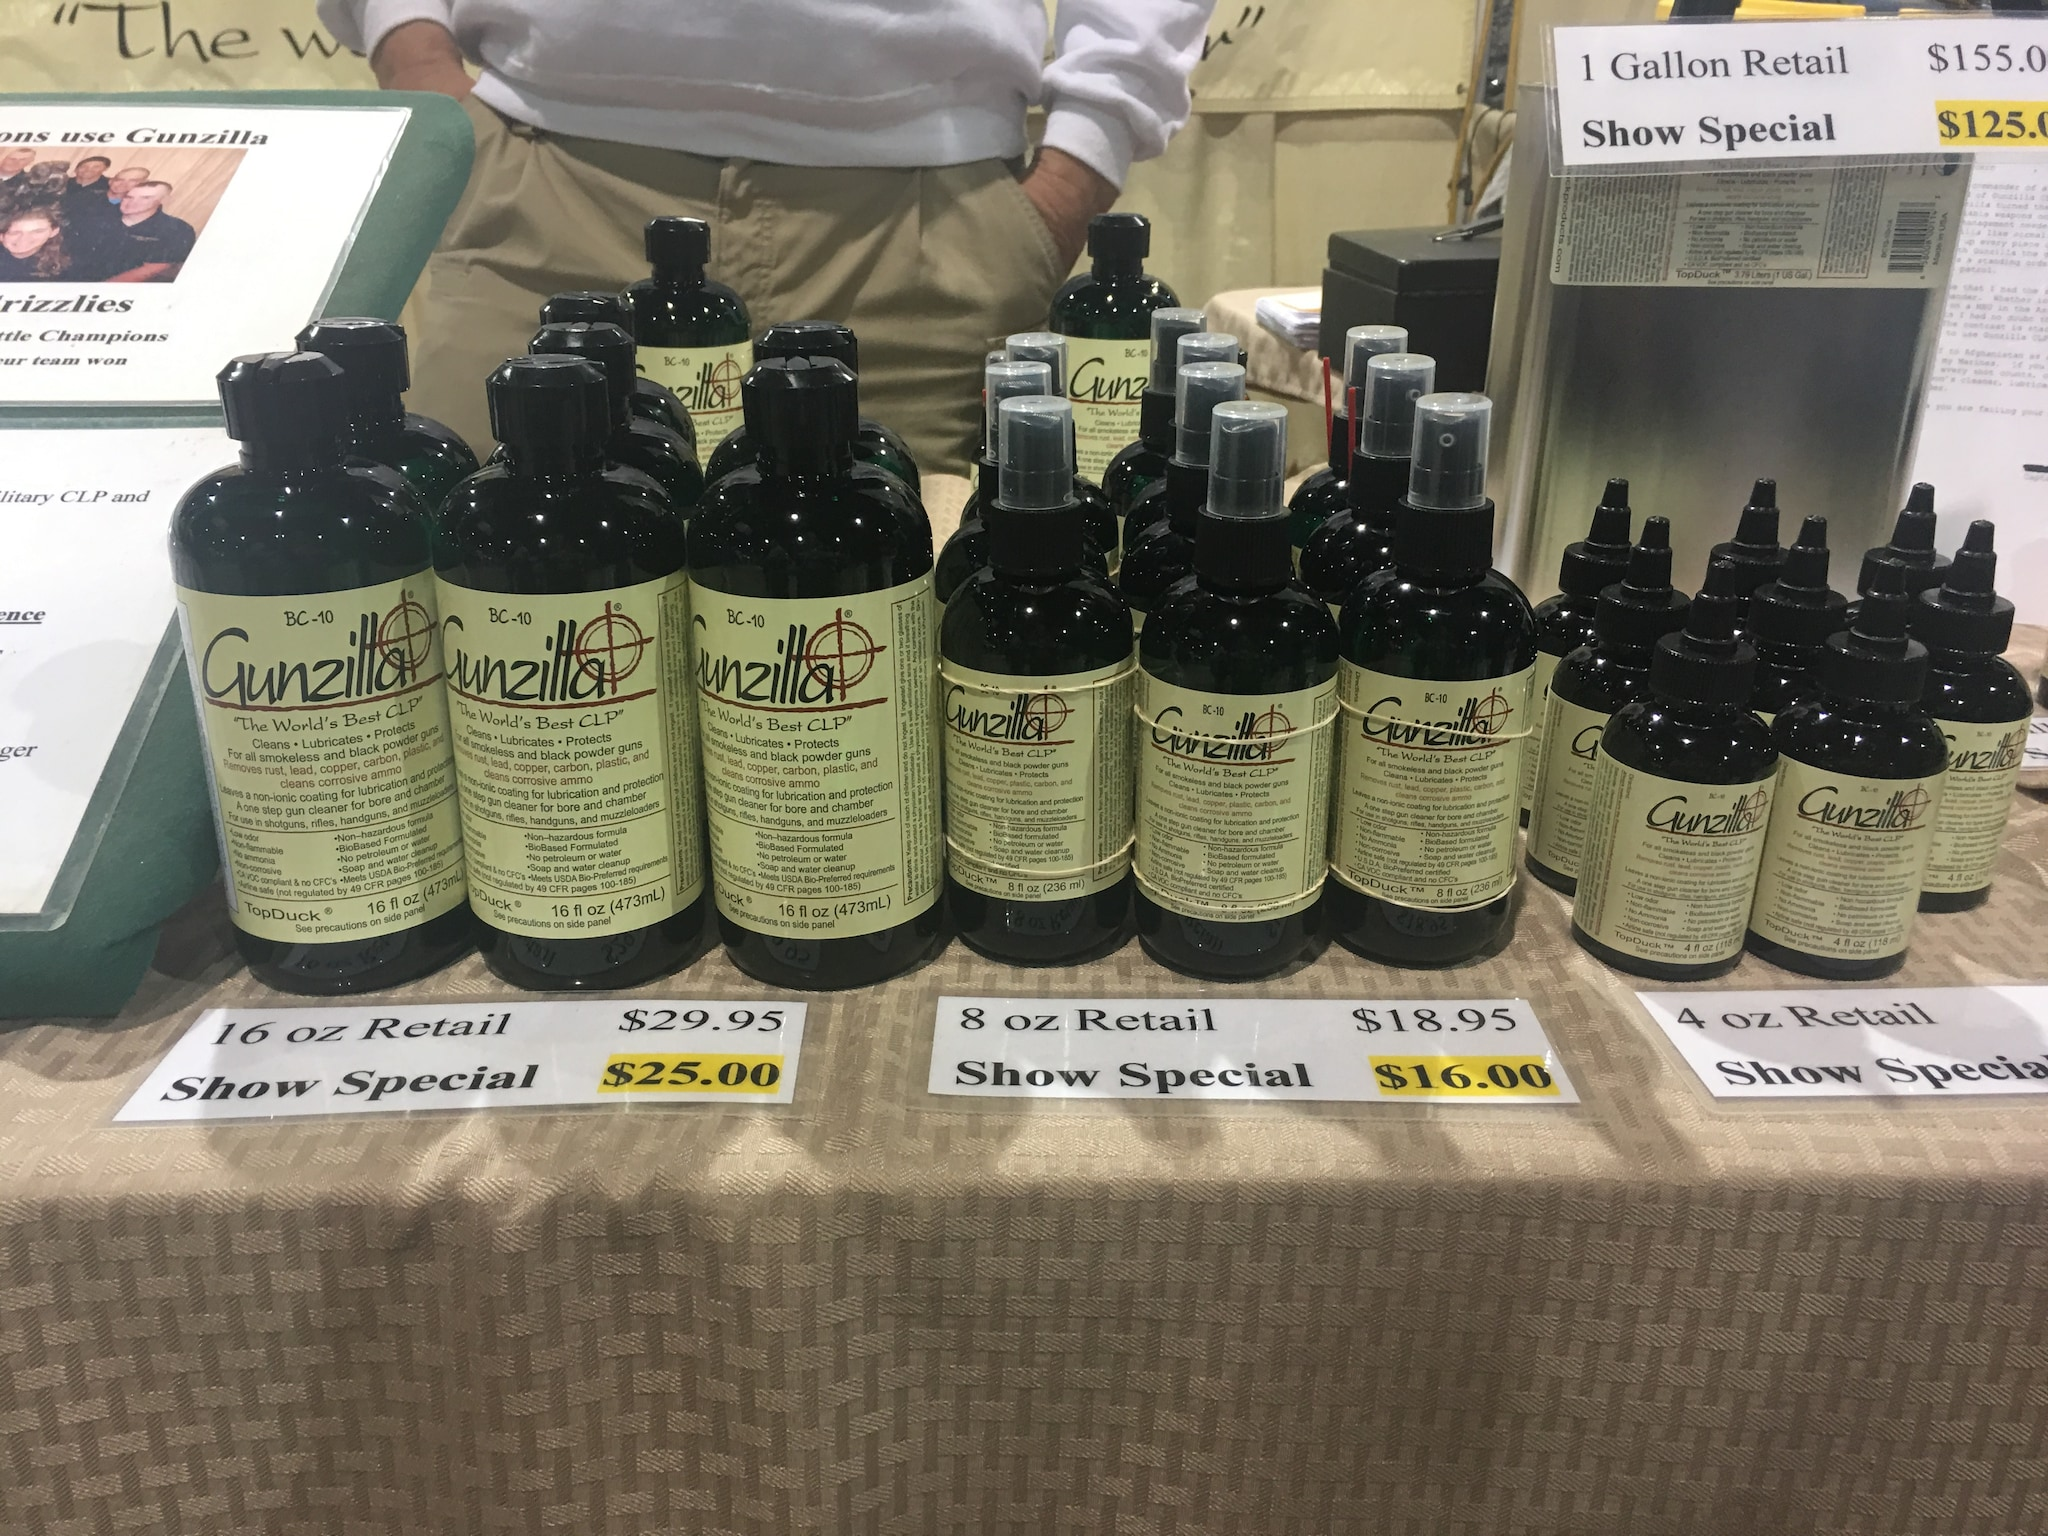 Gunzilla claims its USDA-certified plant-based formula cleans guns faster, improves accuracy and reduces weapon malfunctions. Don Kettles, president of TopDuck Products LLC -- Gunzilla's manufacturer -- comes to the Great American Outdoor Show every year to sell to a loyal fan base. (Photo: Christen Smith/Guns.com)